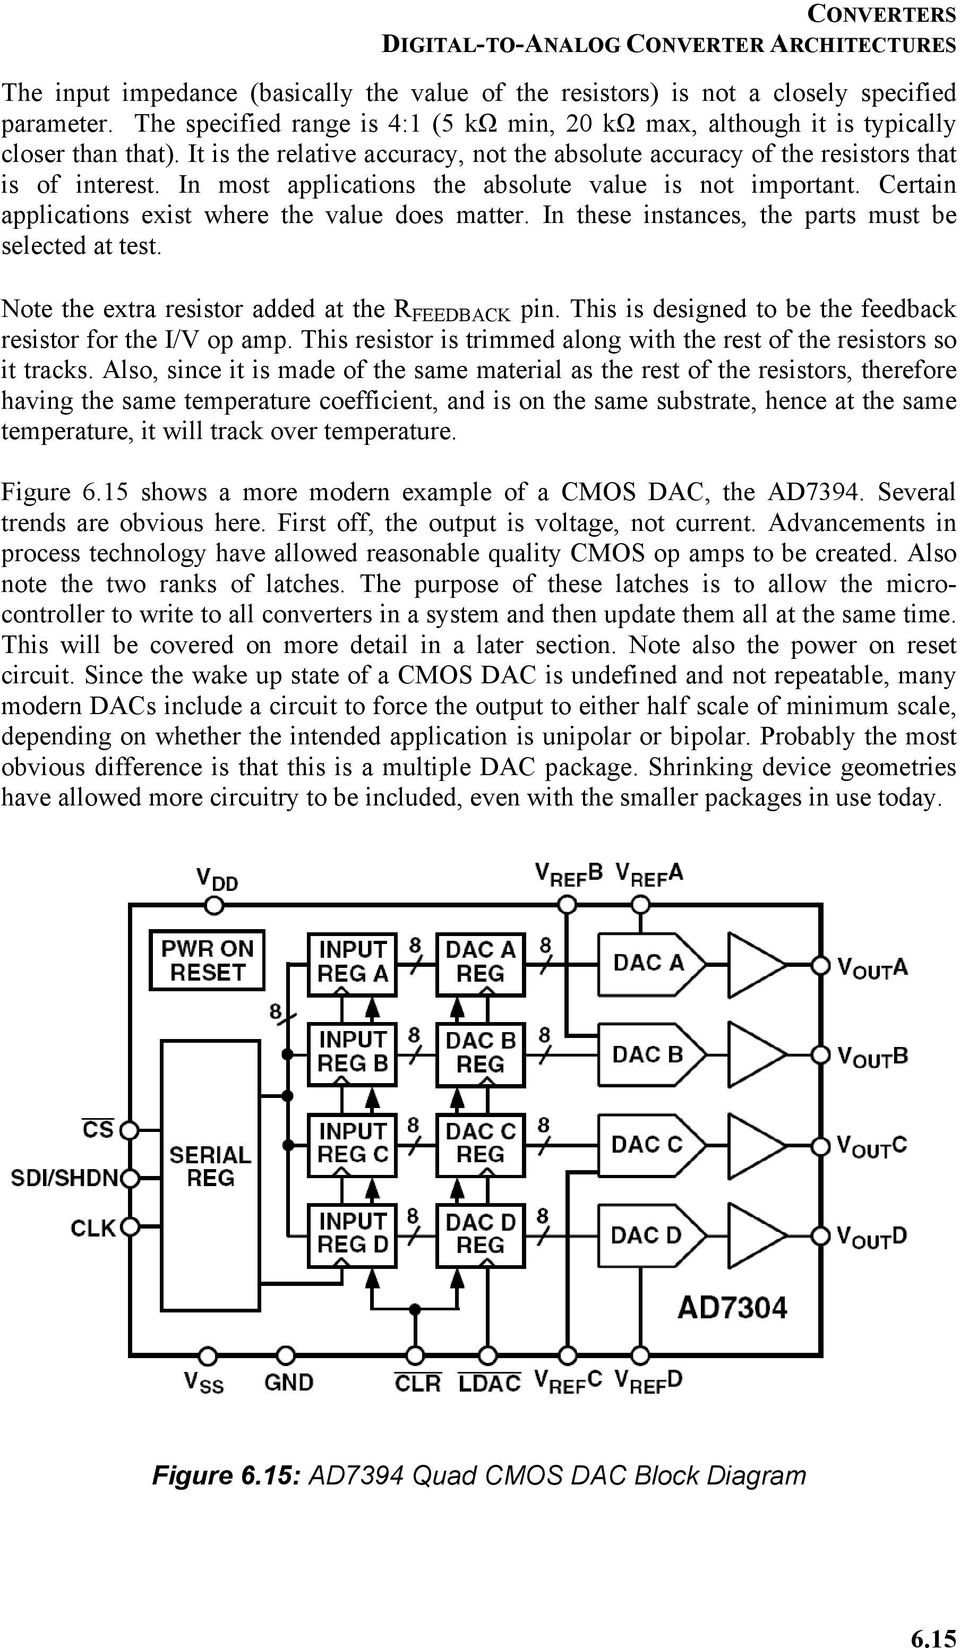 Chapter 6 Converters Pdf This Digitaltoanalog Converter Dac Integrated Circuit Is Designed In Most Applications The Absolute Value Not Important Certain Exist Where